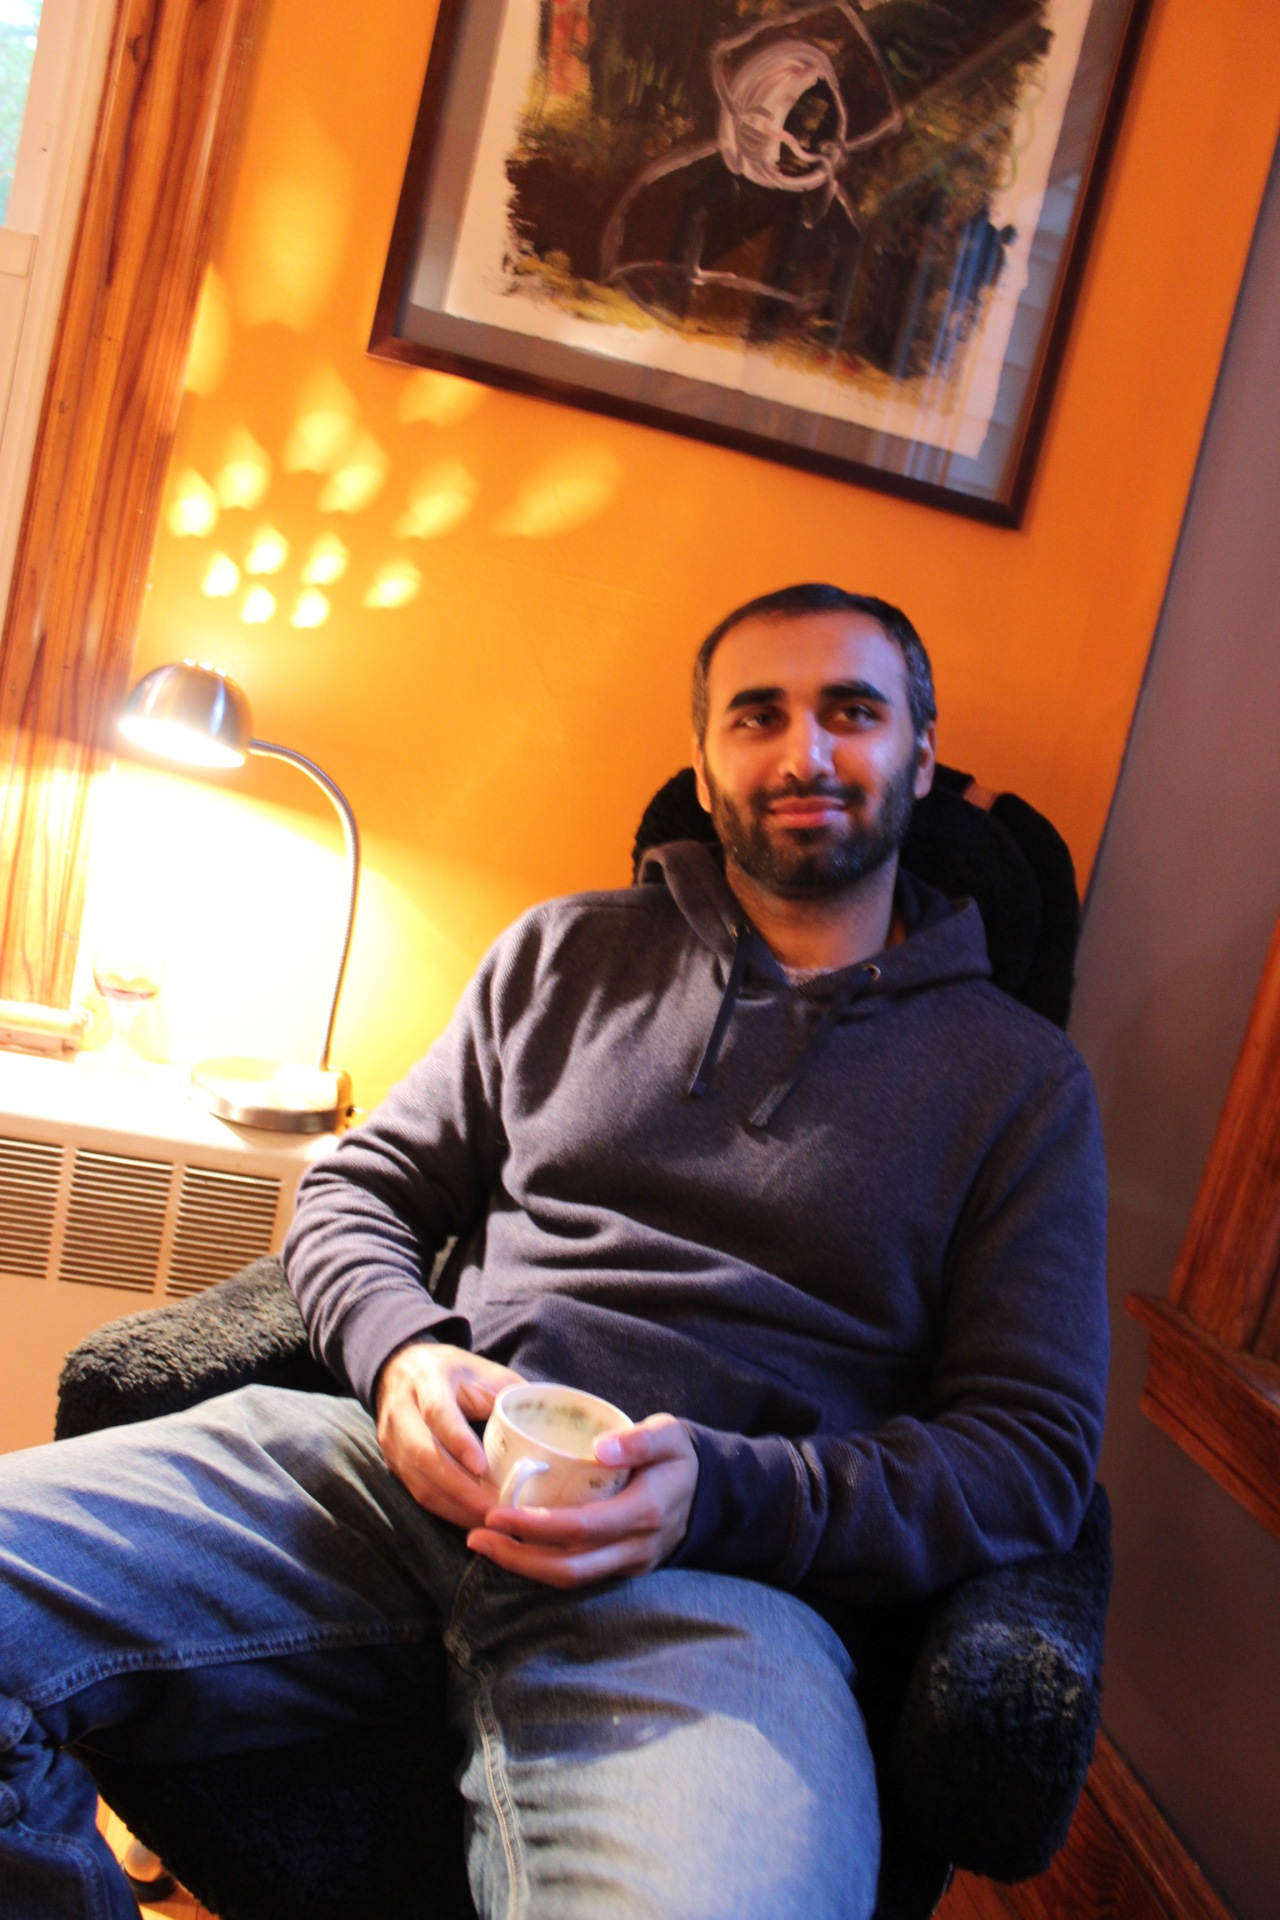 Interview - Hafeez Lakhani, Memoirist, Essayist and Fiction Writer